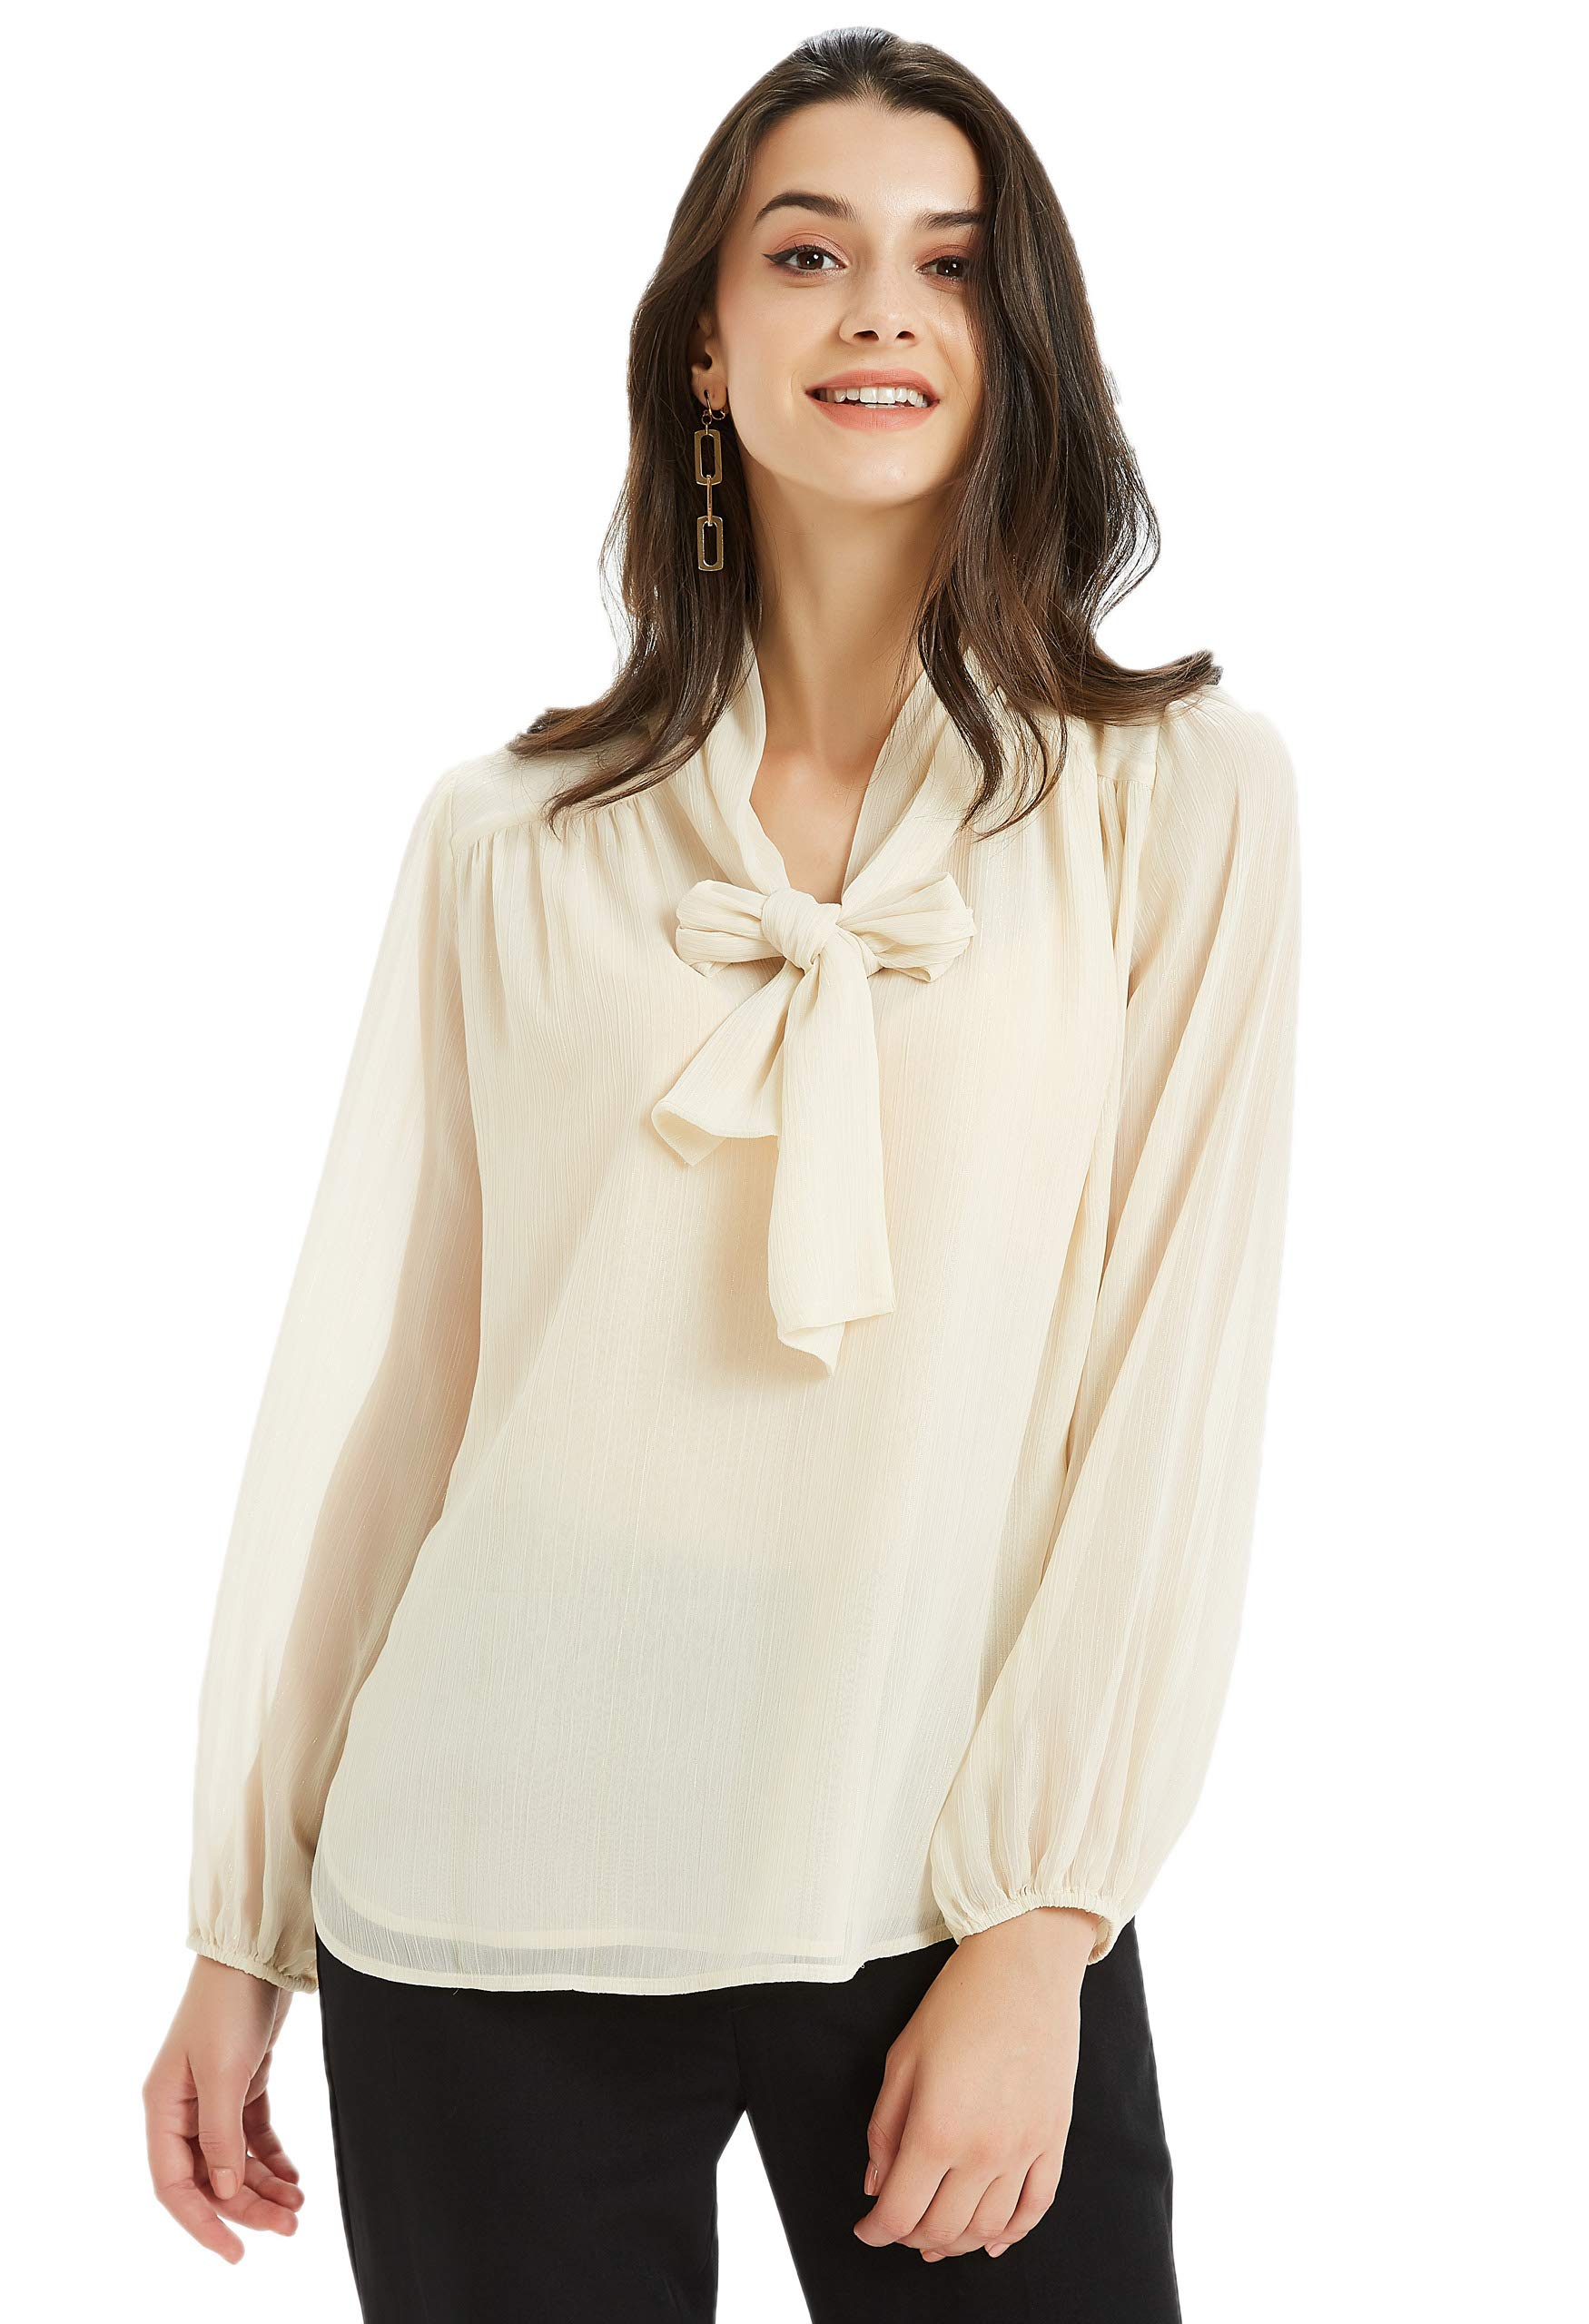 Basic Model Womens Chiffon Blouse Bow Tie Neck Tops Long Sleeve Casual Office Work T Shirts